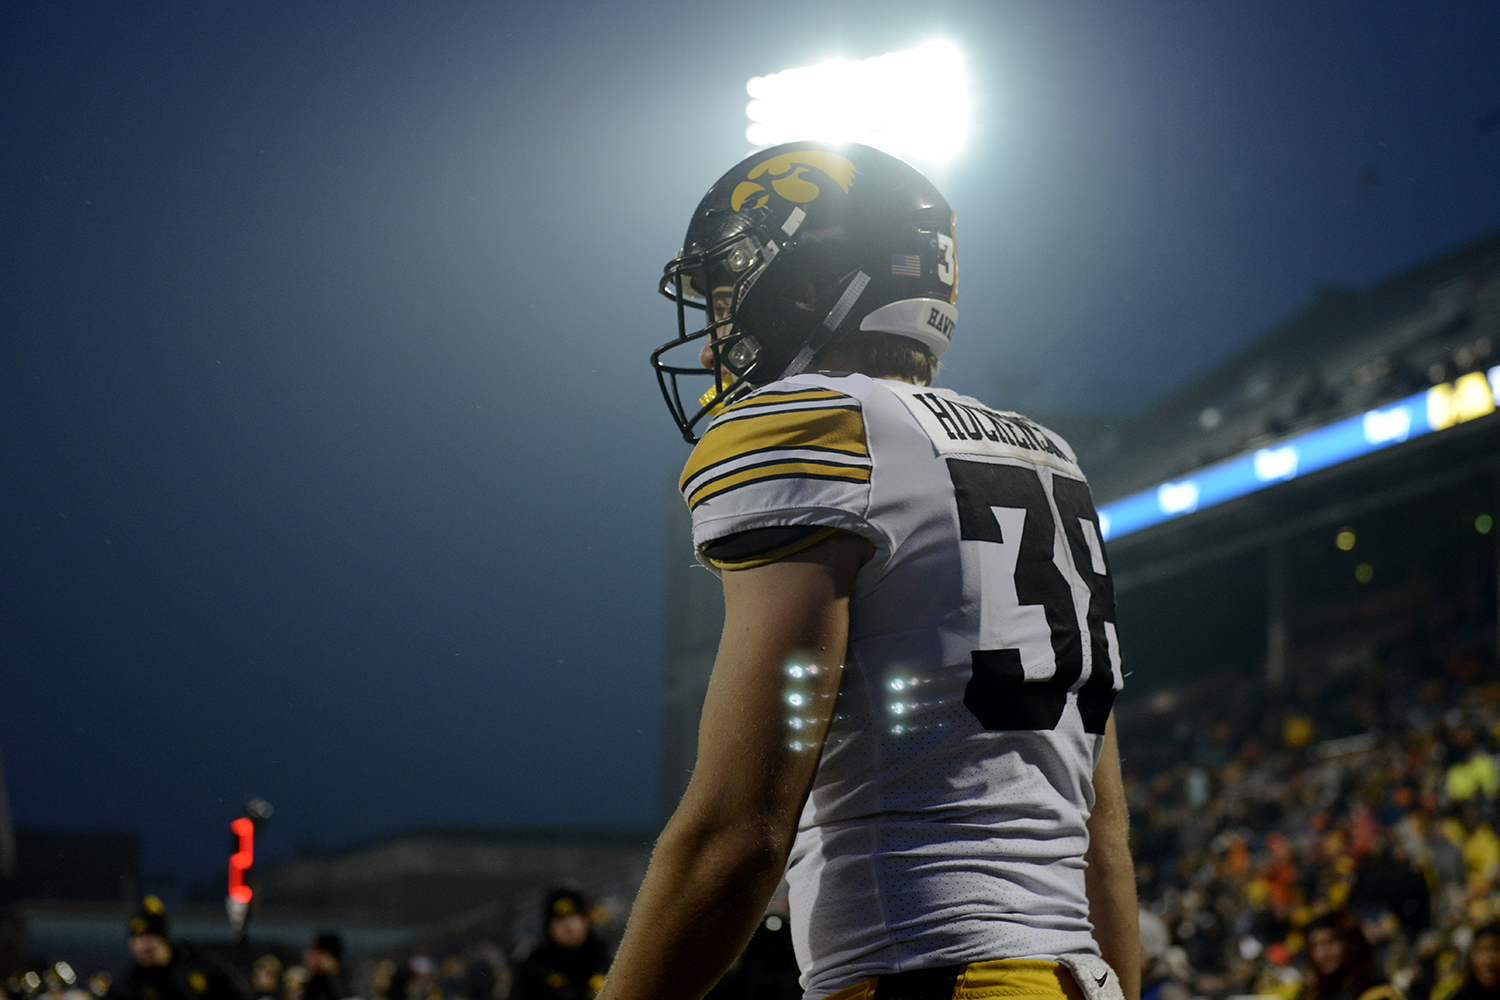 Iowa tight end T.J. Hockenson walks back onto the field after an incomplete pass during Iowa's game against Illinois at Memorial Stadium in Champaign, IL, on Saturday, Nov. 17, 2018. The Hawkeyes defeated the Fighting Illini 63-0.